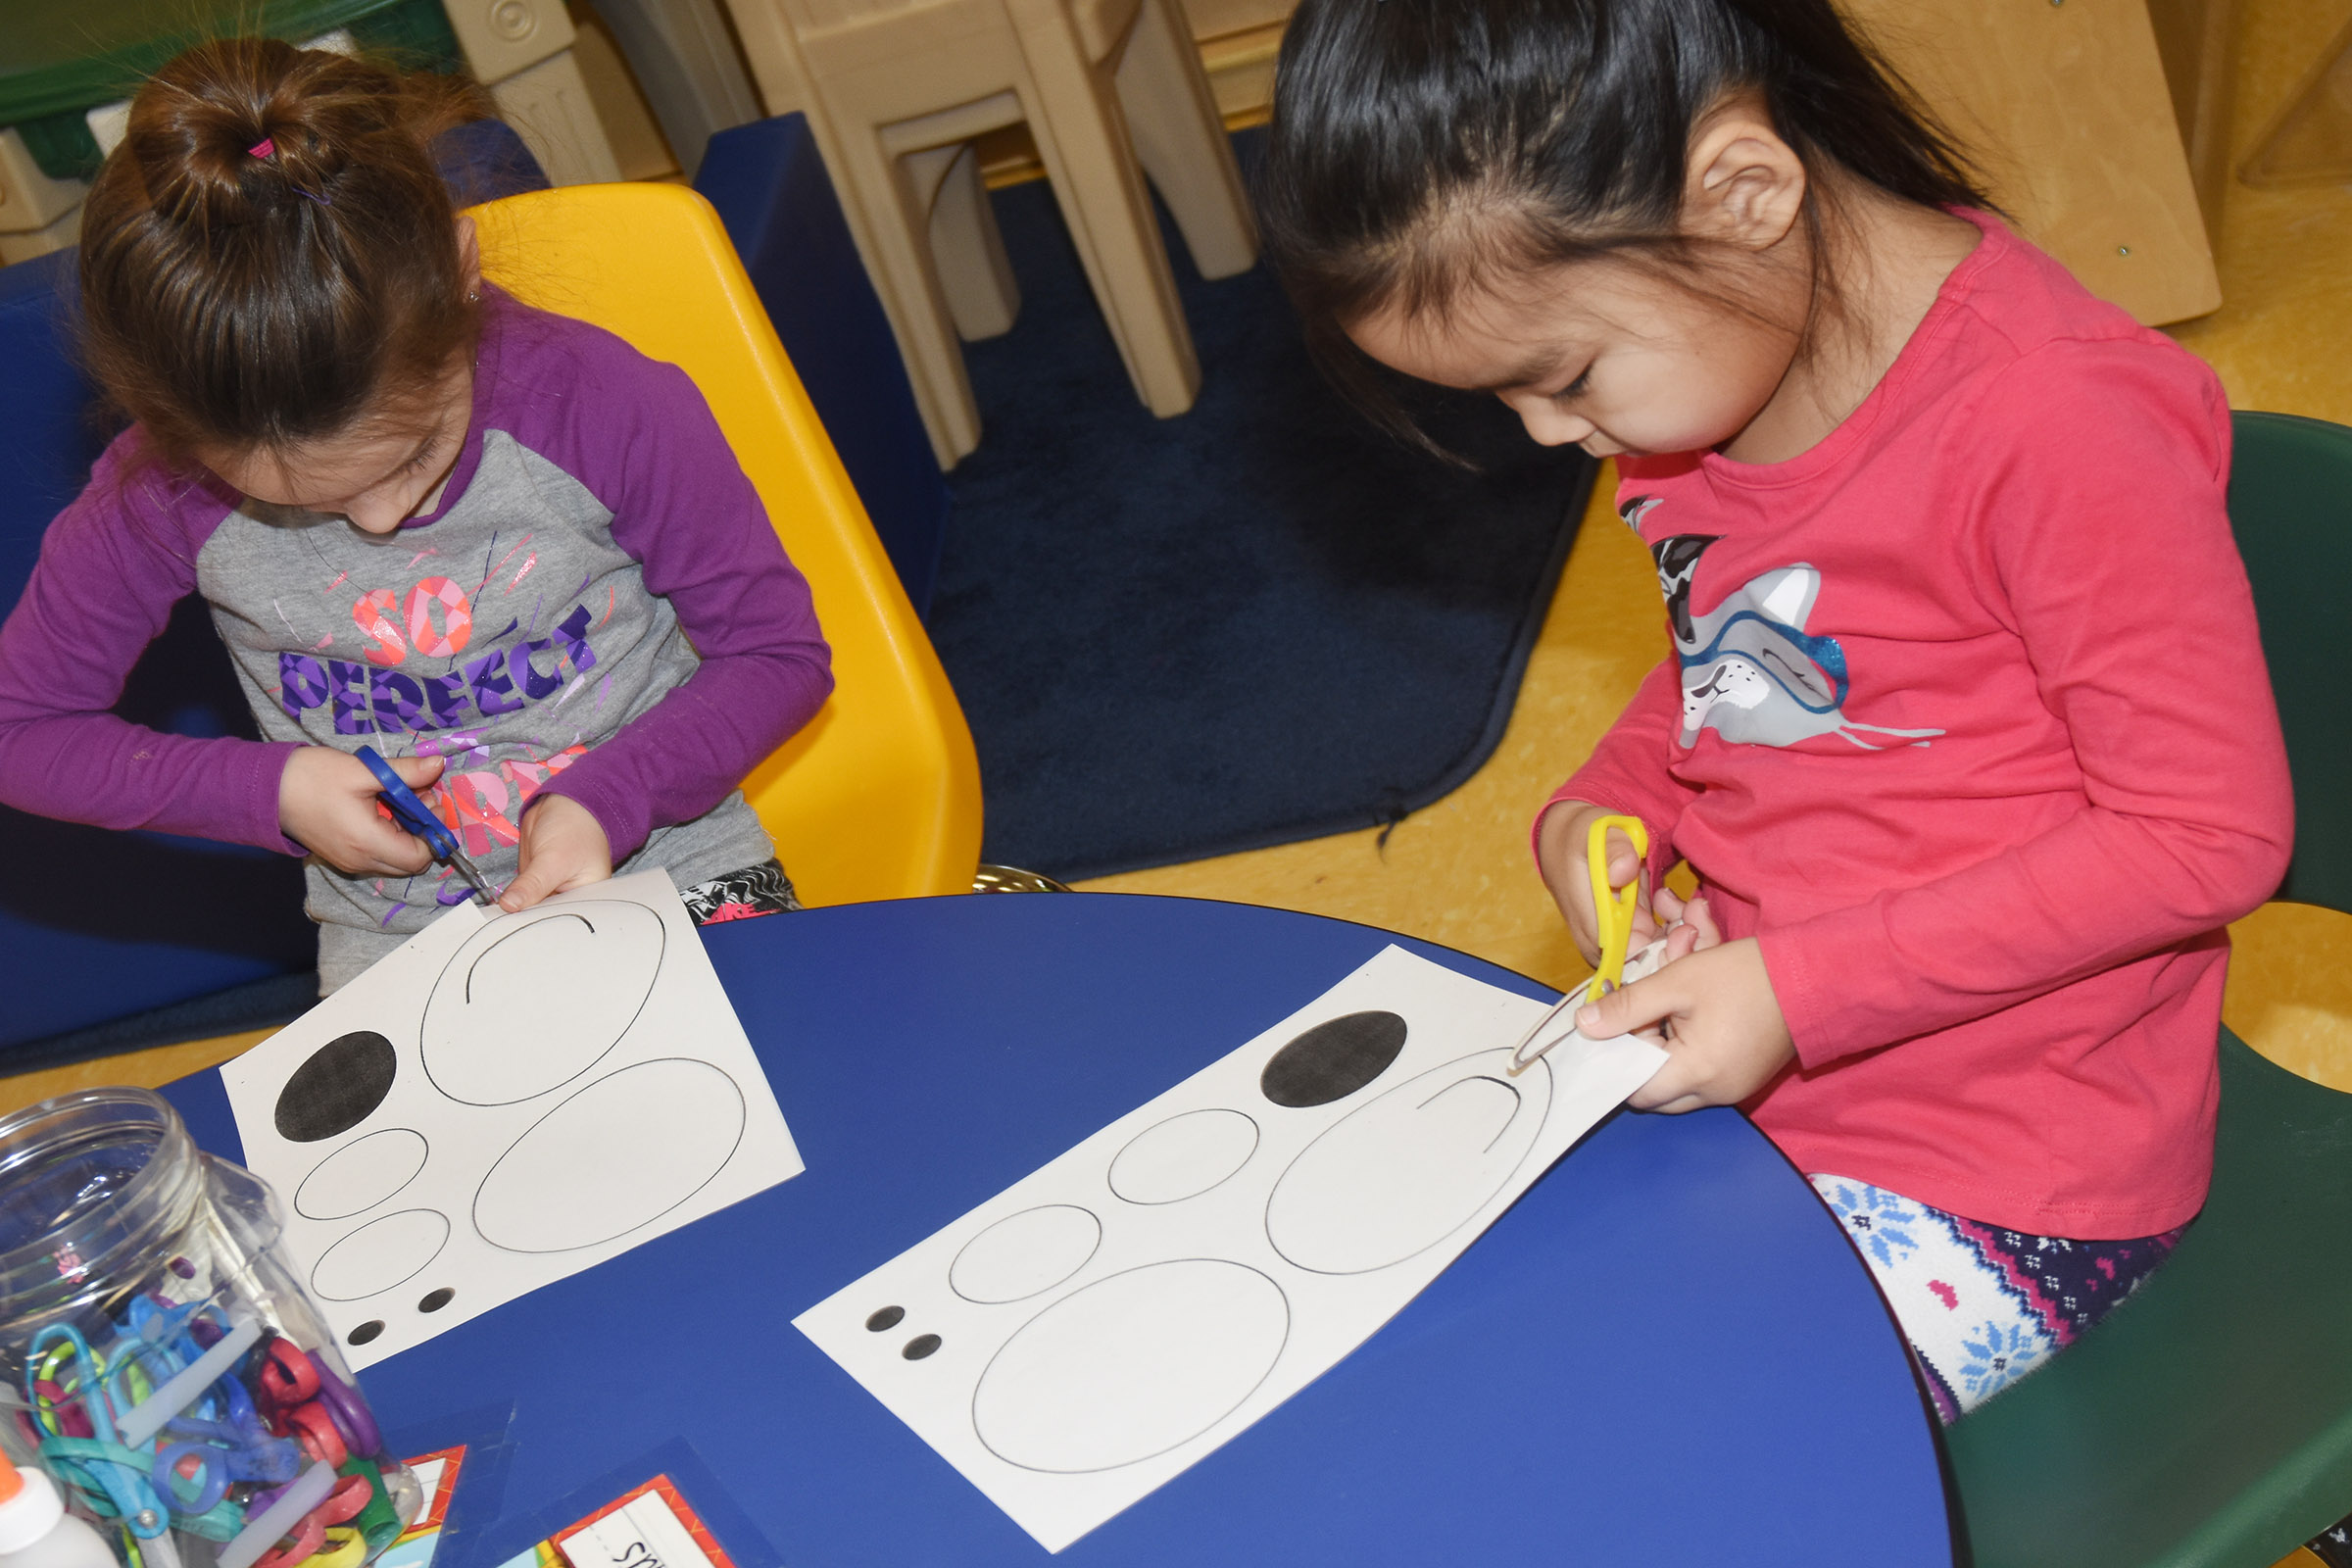 CES preschool students Lylah Davis, at left, and Marla Bat cut out the shapes to make their polar bears.